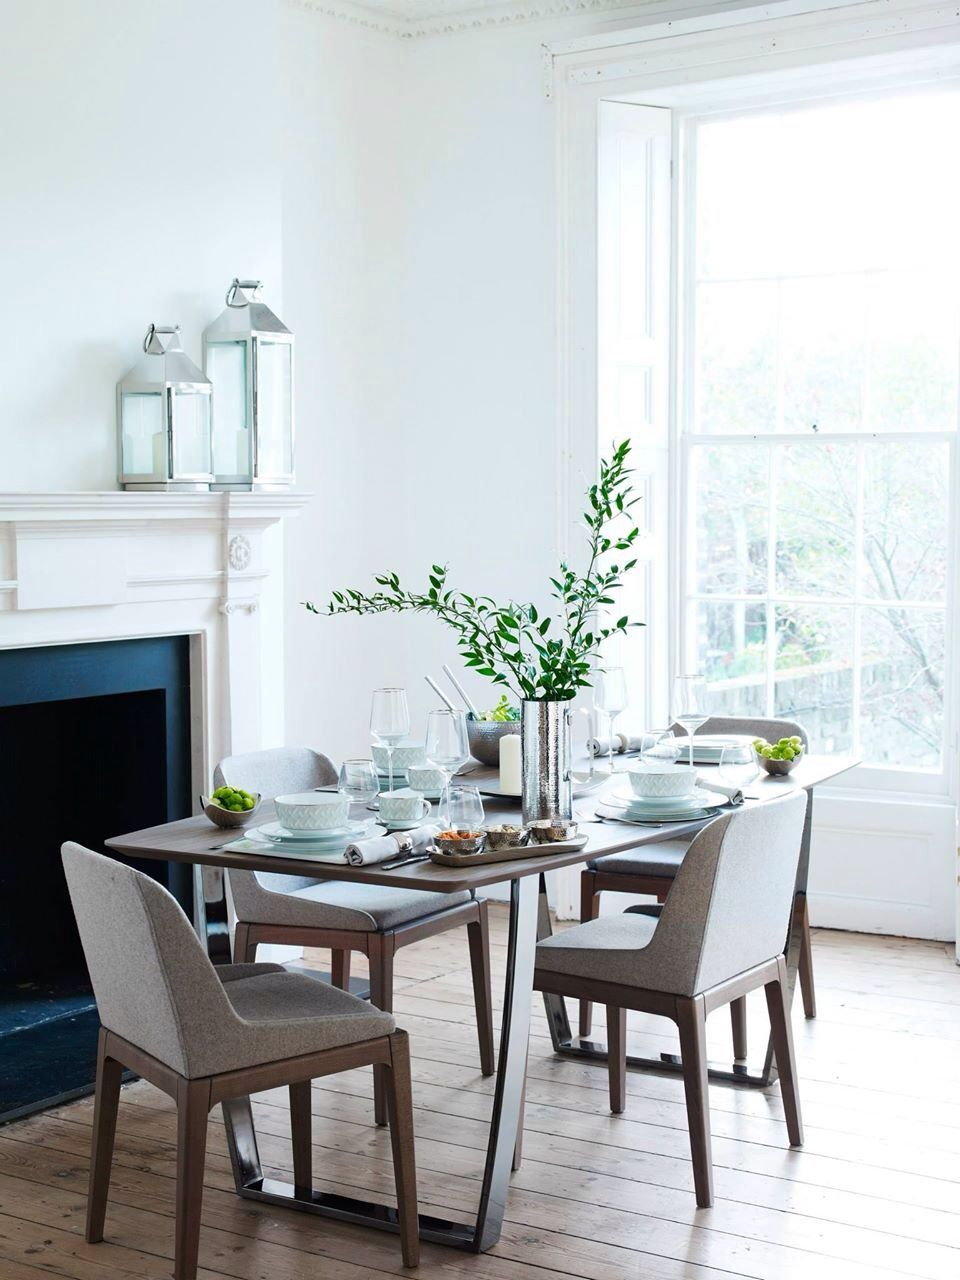 House Of Fraser Dining Room Furniture Best Ss14 #hofathome  Ss14 Hofathome  Pinterest  Ranges House And Room Inspiration